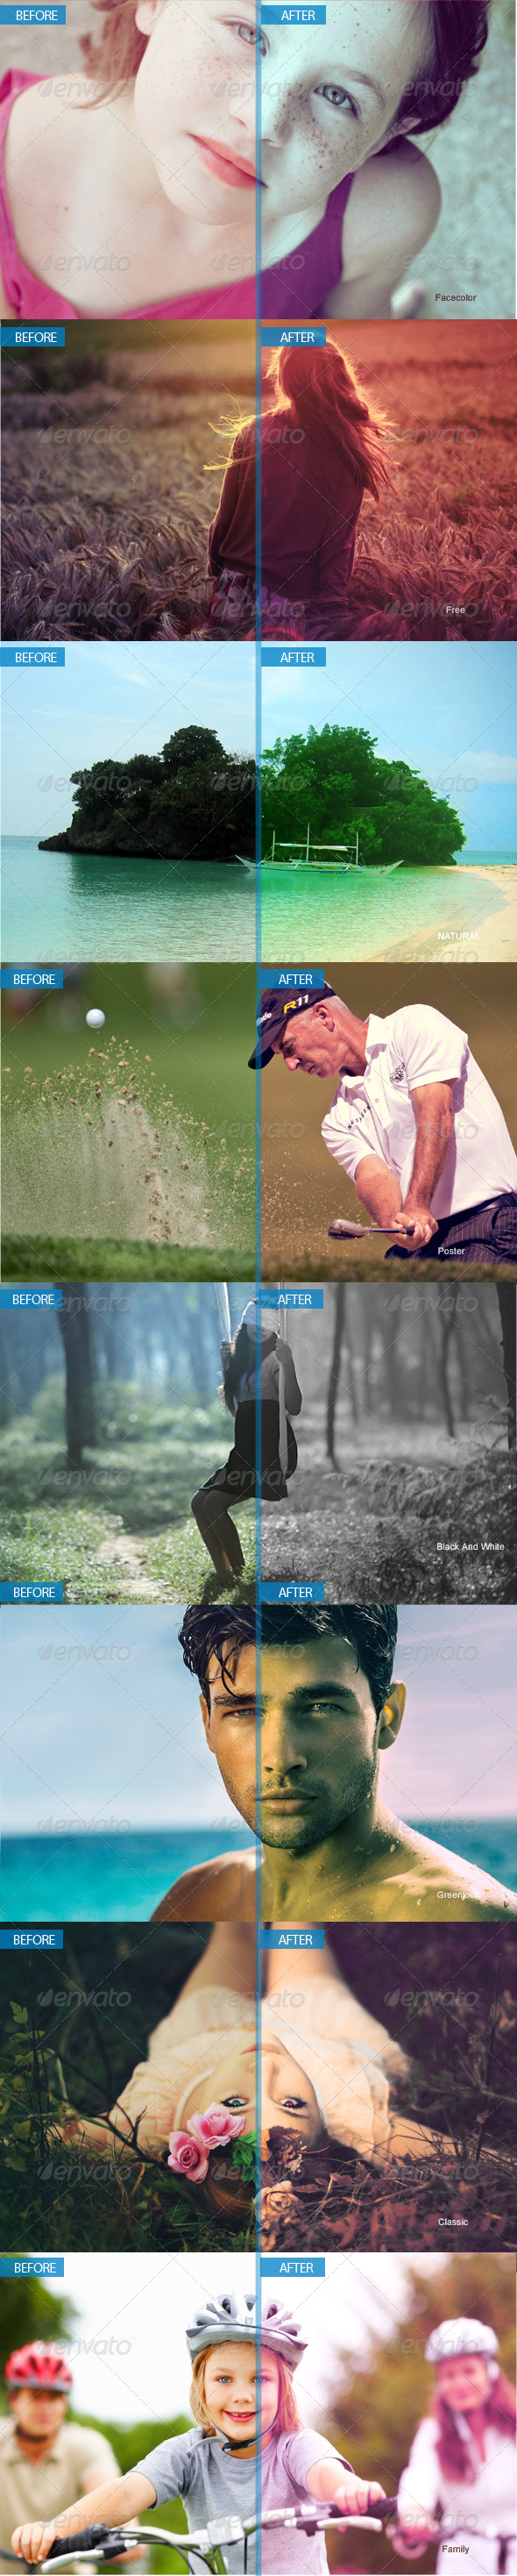 GraphicRiver Professional Photoshop Actions 6252779